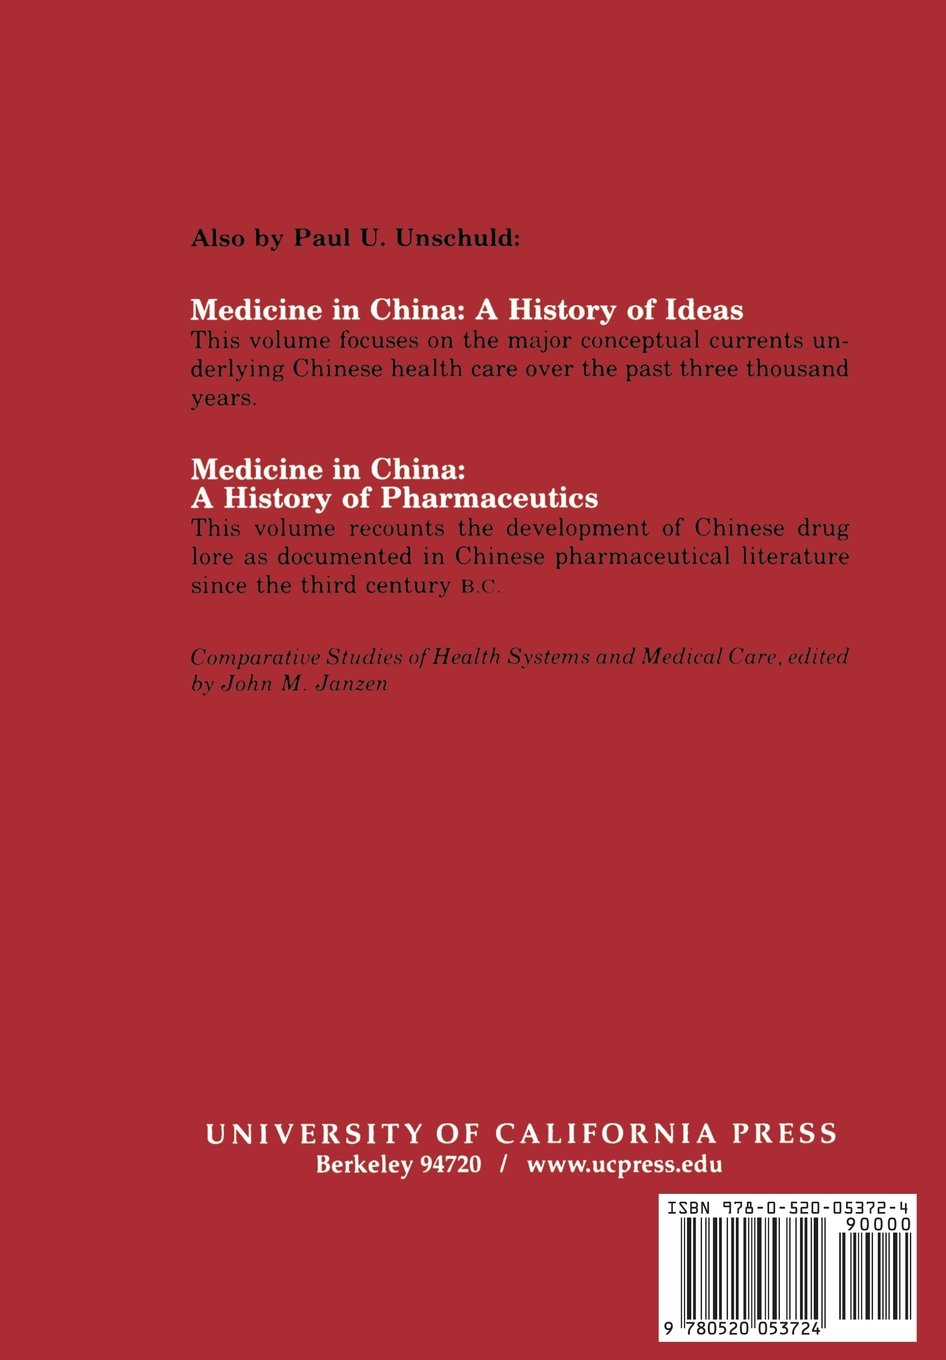 Nan-ching_The Classic of Difficult Issues (Comparative Studies of Health  Systems and Medical Care): Paul U. Unschuld: 9780520053724: Amazon.com:  Books